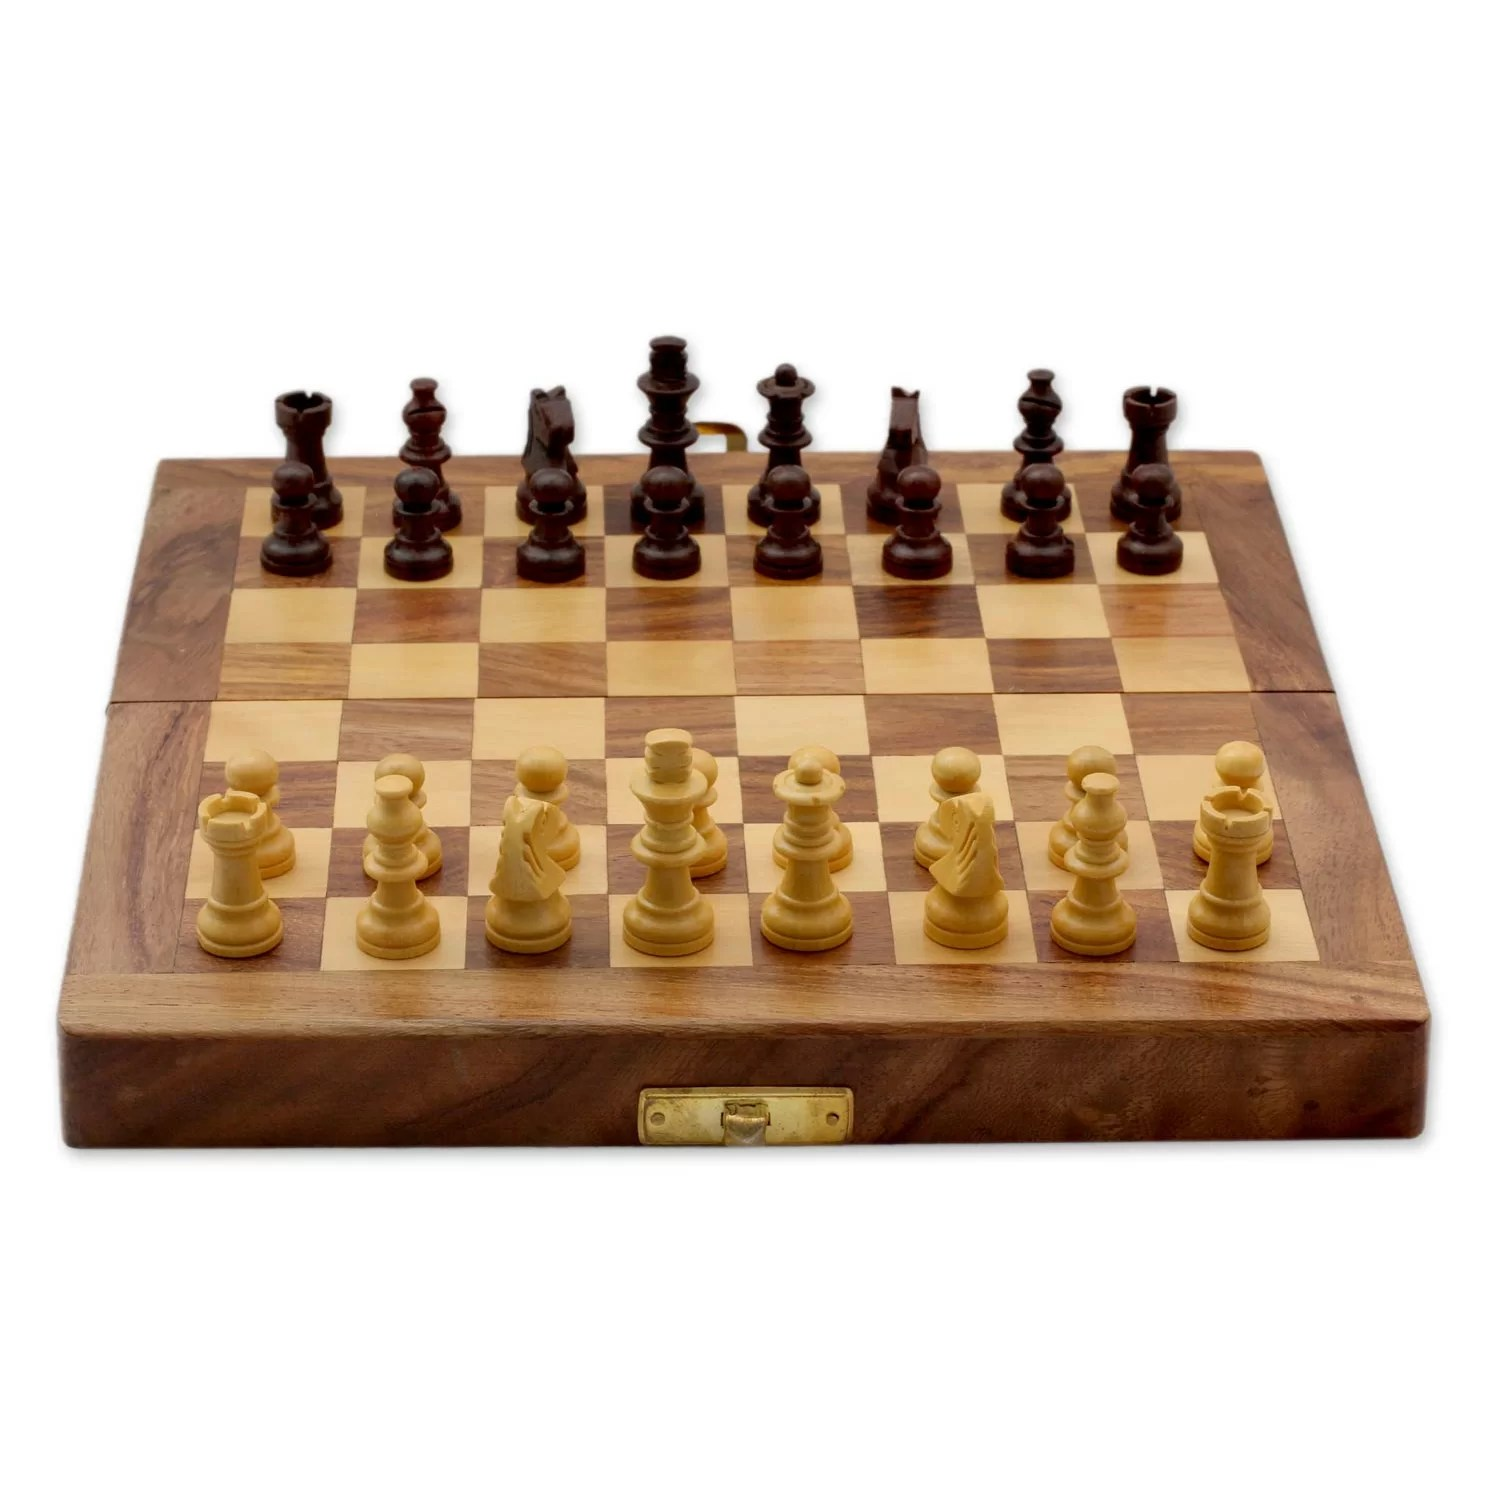 Fancy Chess Set Novica Fair Trade Decorative India Wood Chess Set Game